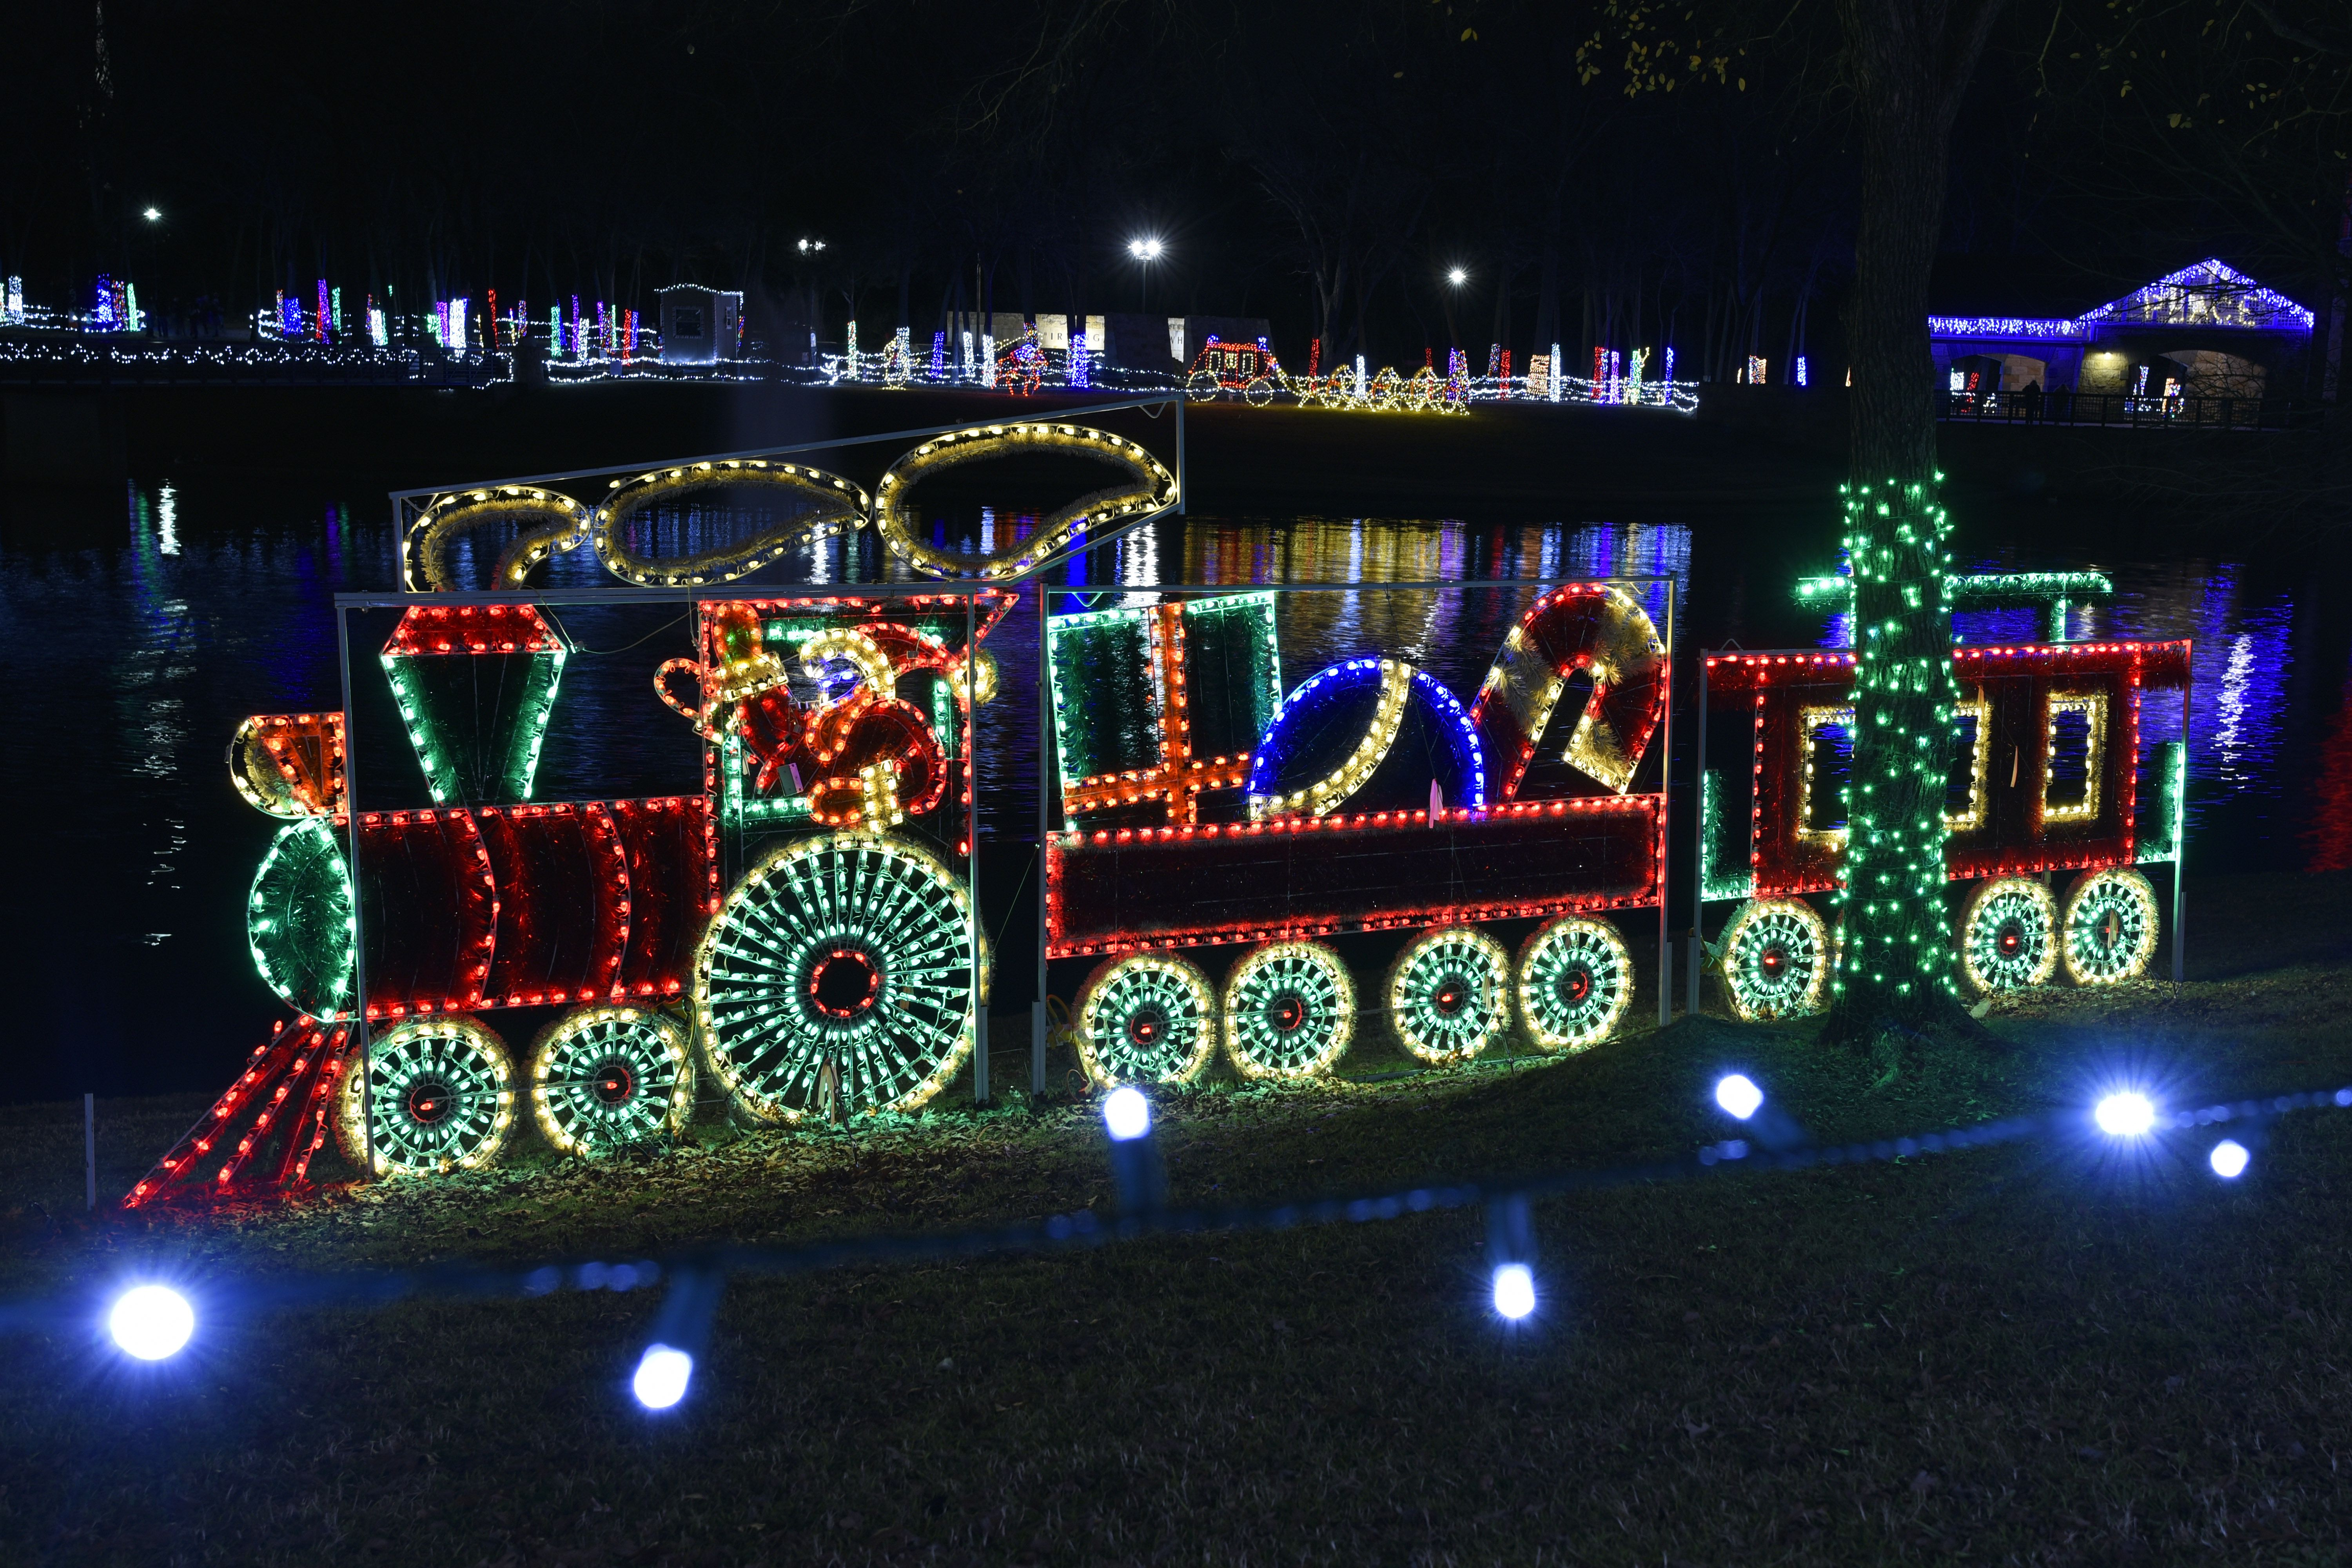 Preston Idaho Christmas Light 2020 Winners The top places to see Christmas lights and other holiday displays